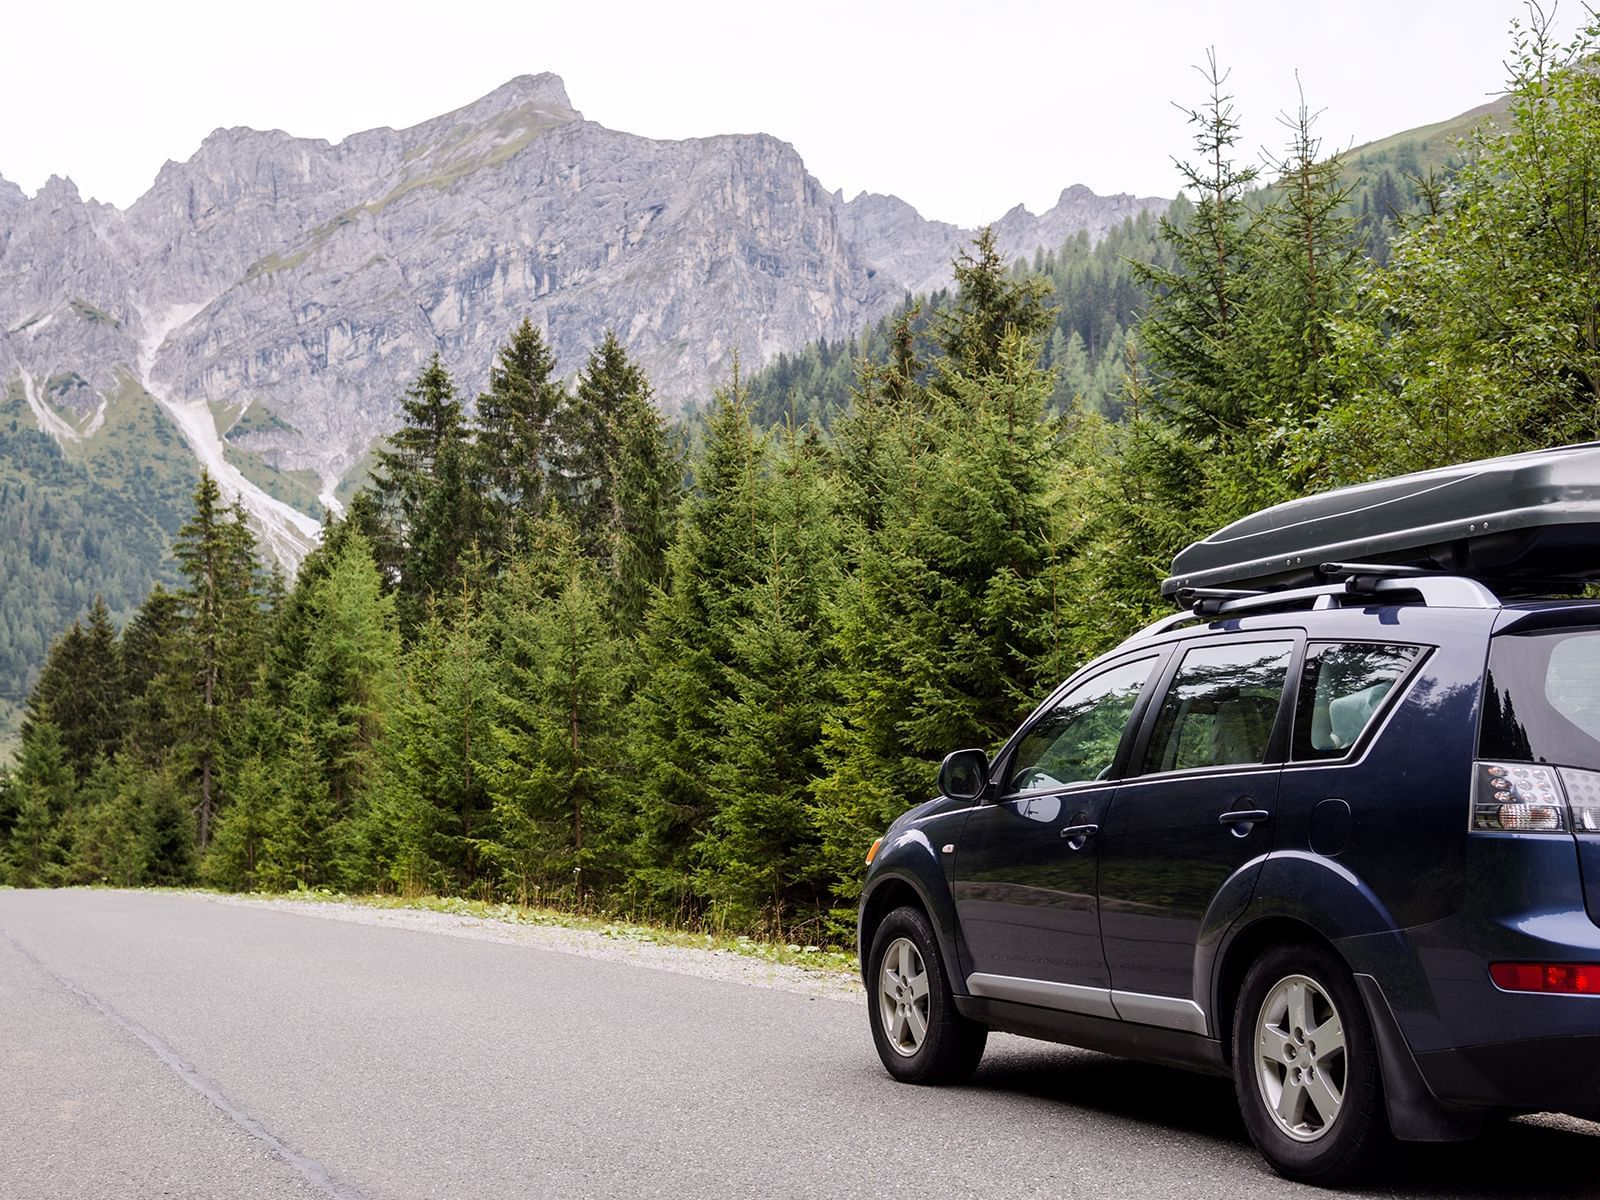 An image of a car on the road near a forest and mountains